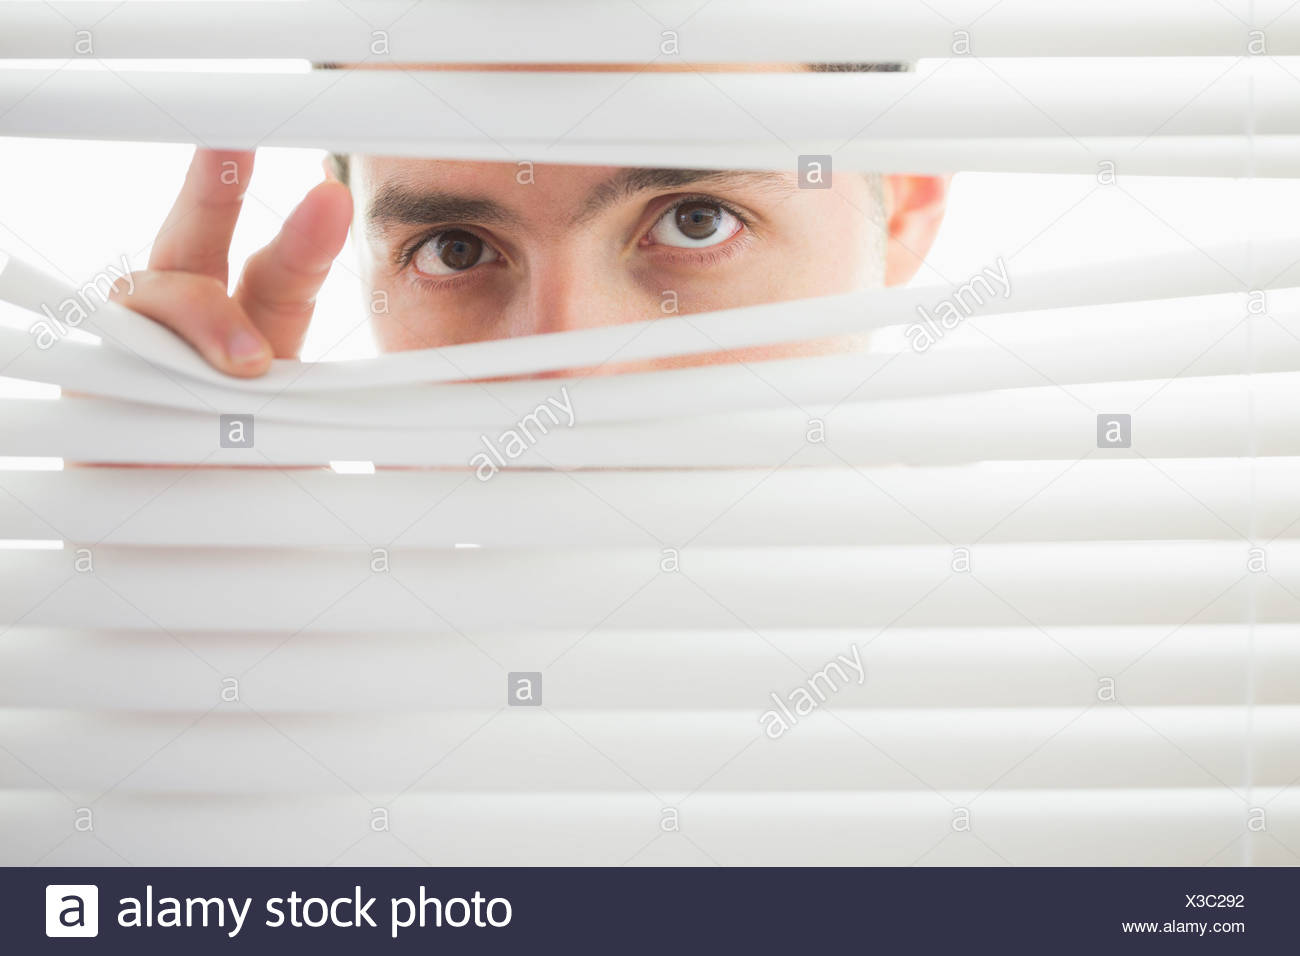 Suspicious male eyes spying through roller blind - Stock Image